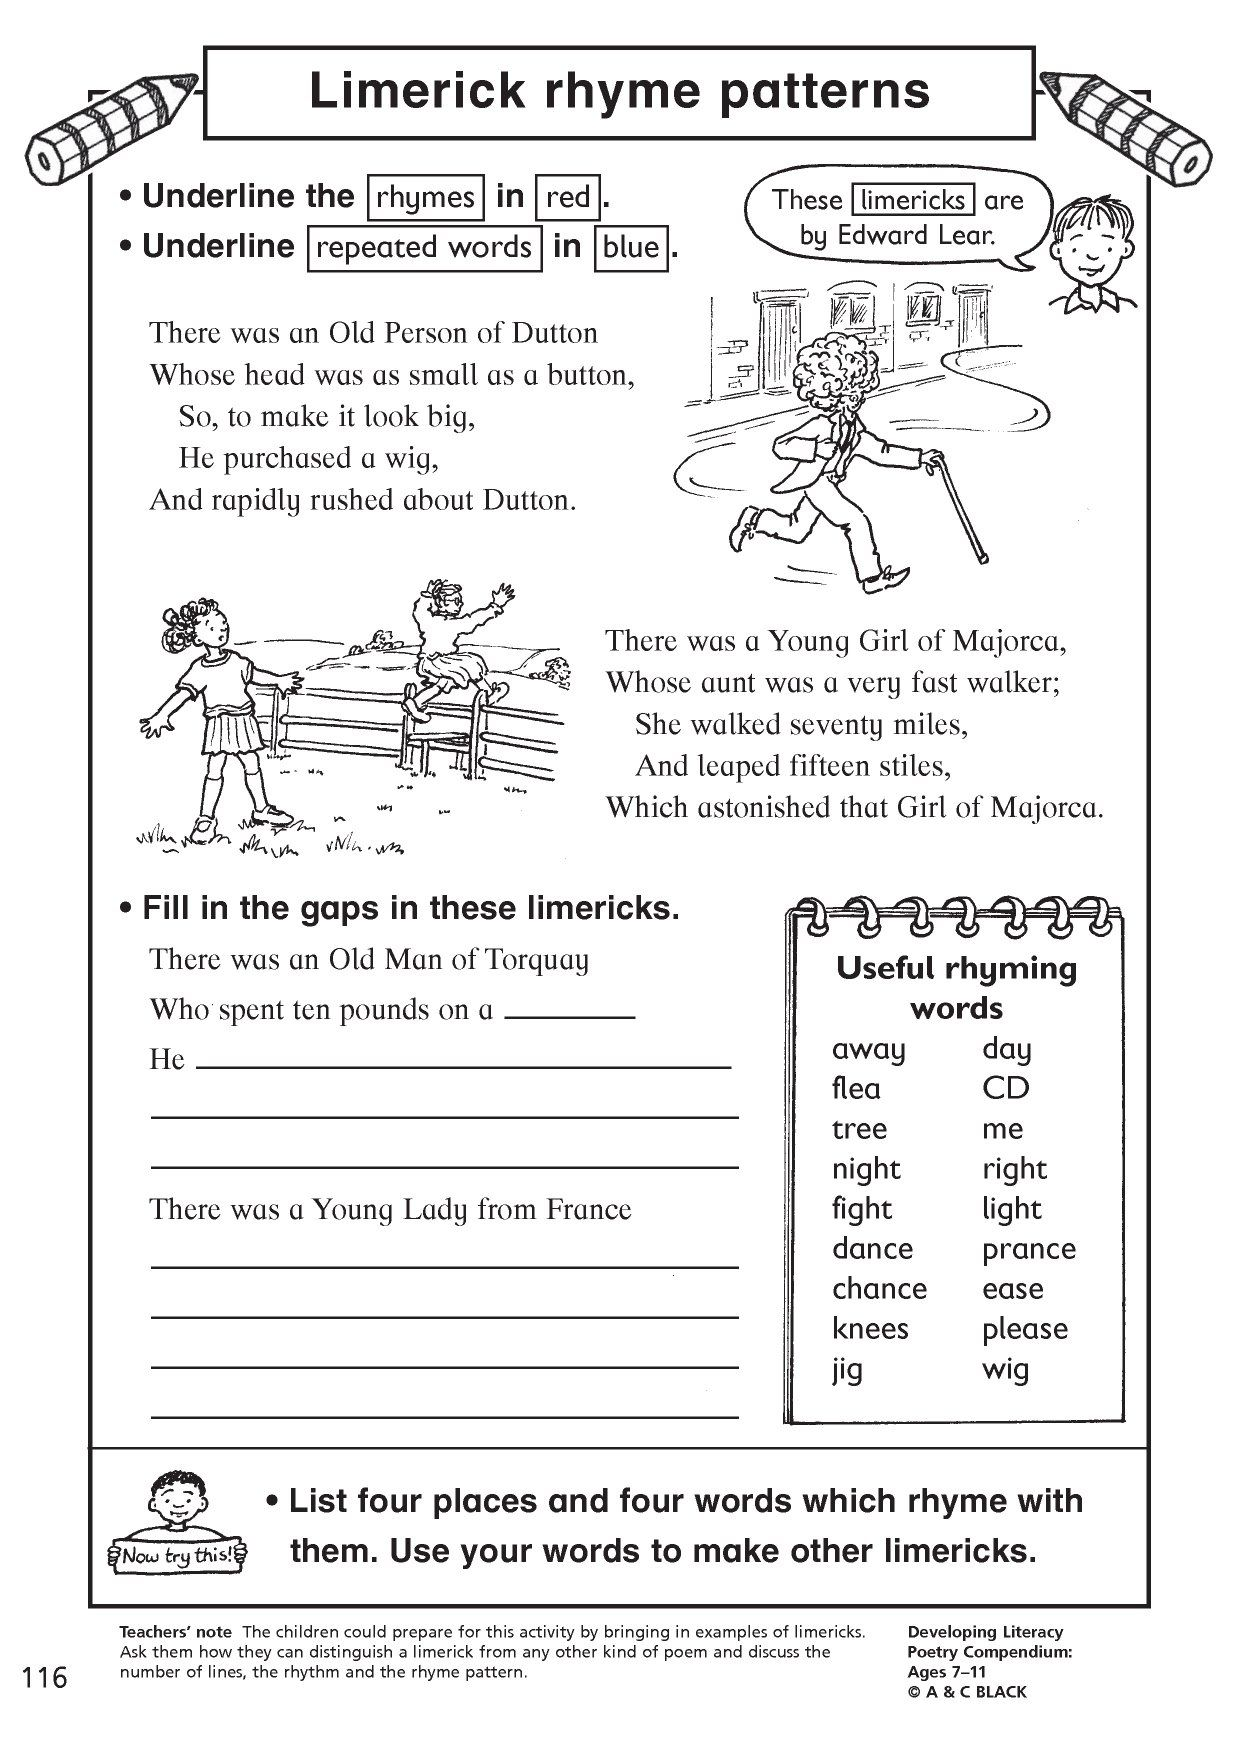 Limerick Writing Worksheet   Printable Worksheets and Activities for  Teachers [ 1754 x 1240 Pixel ]